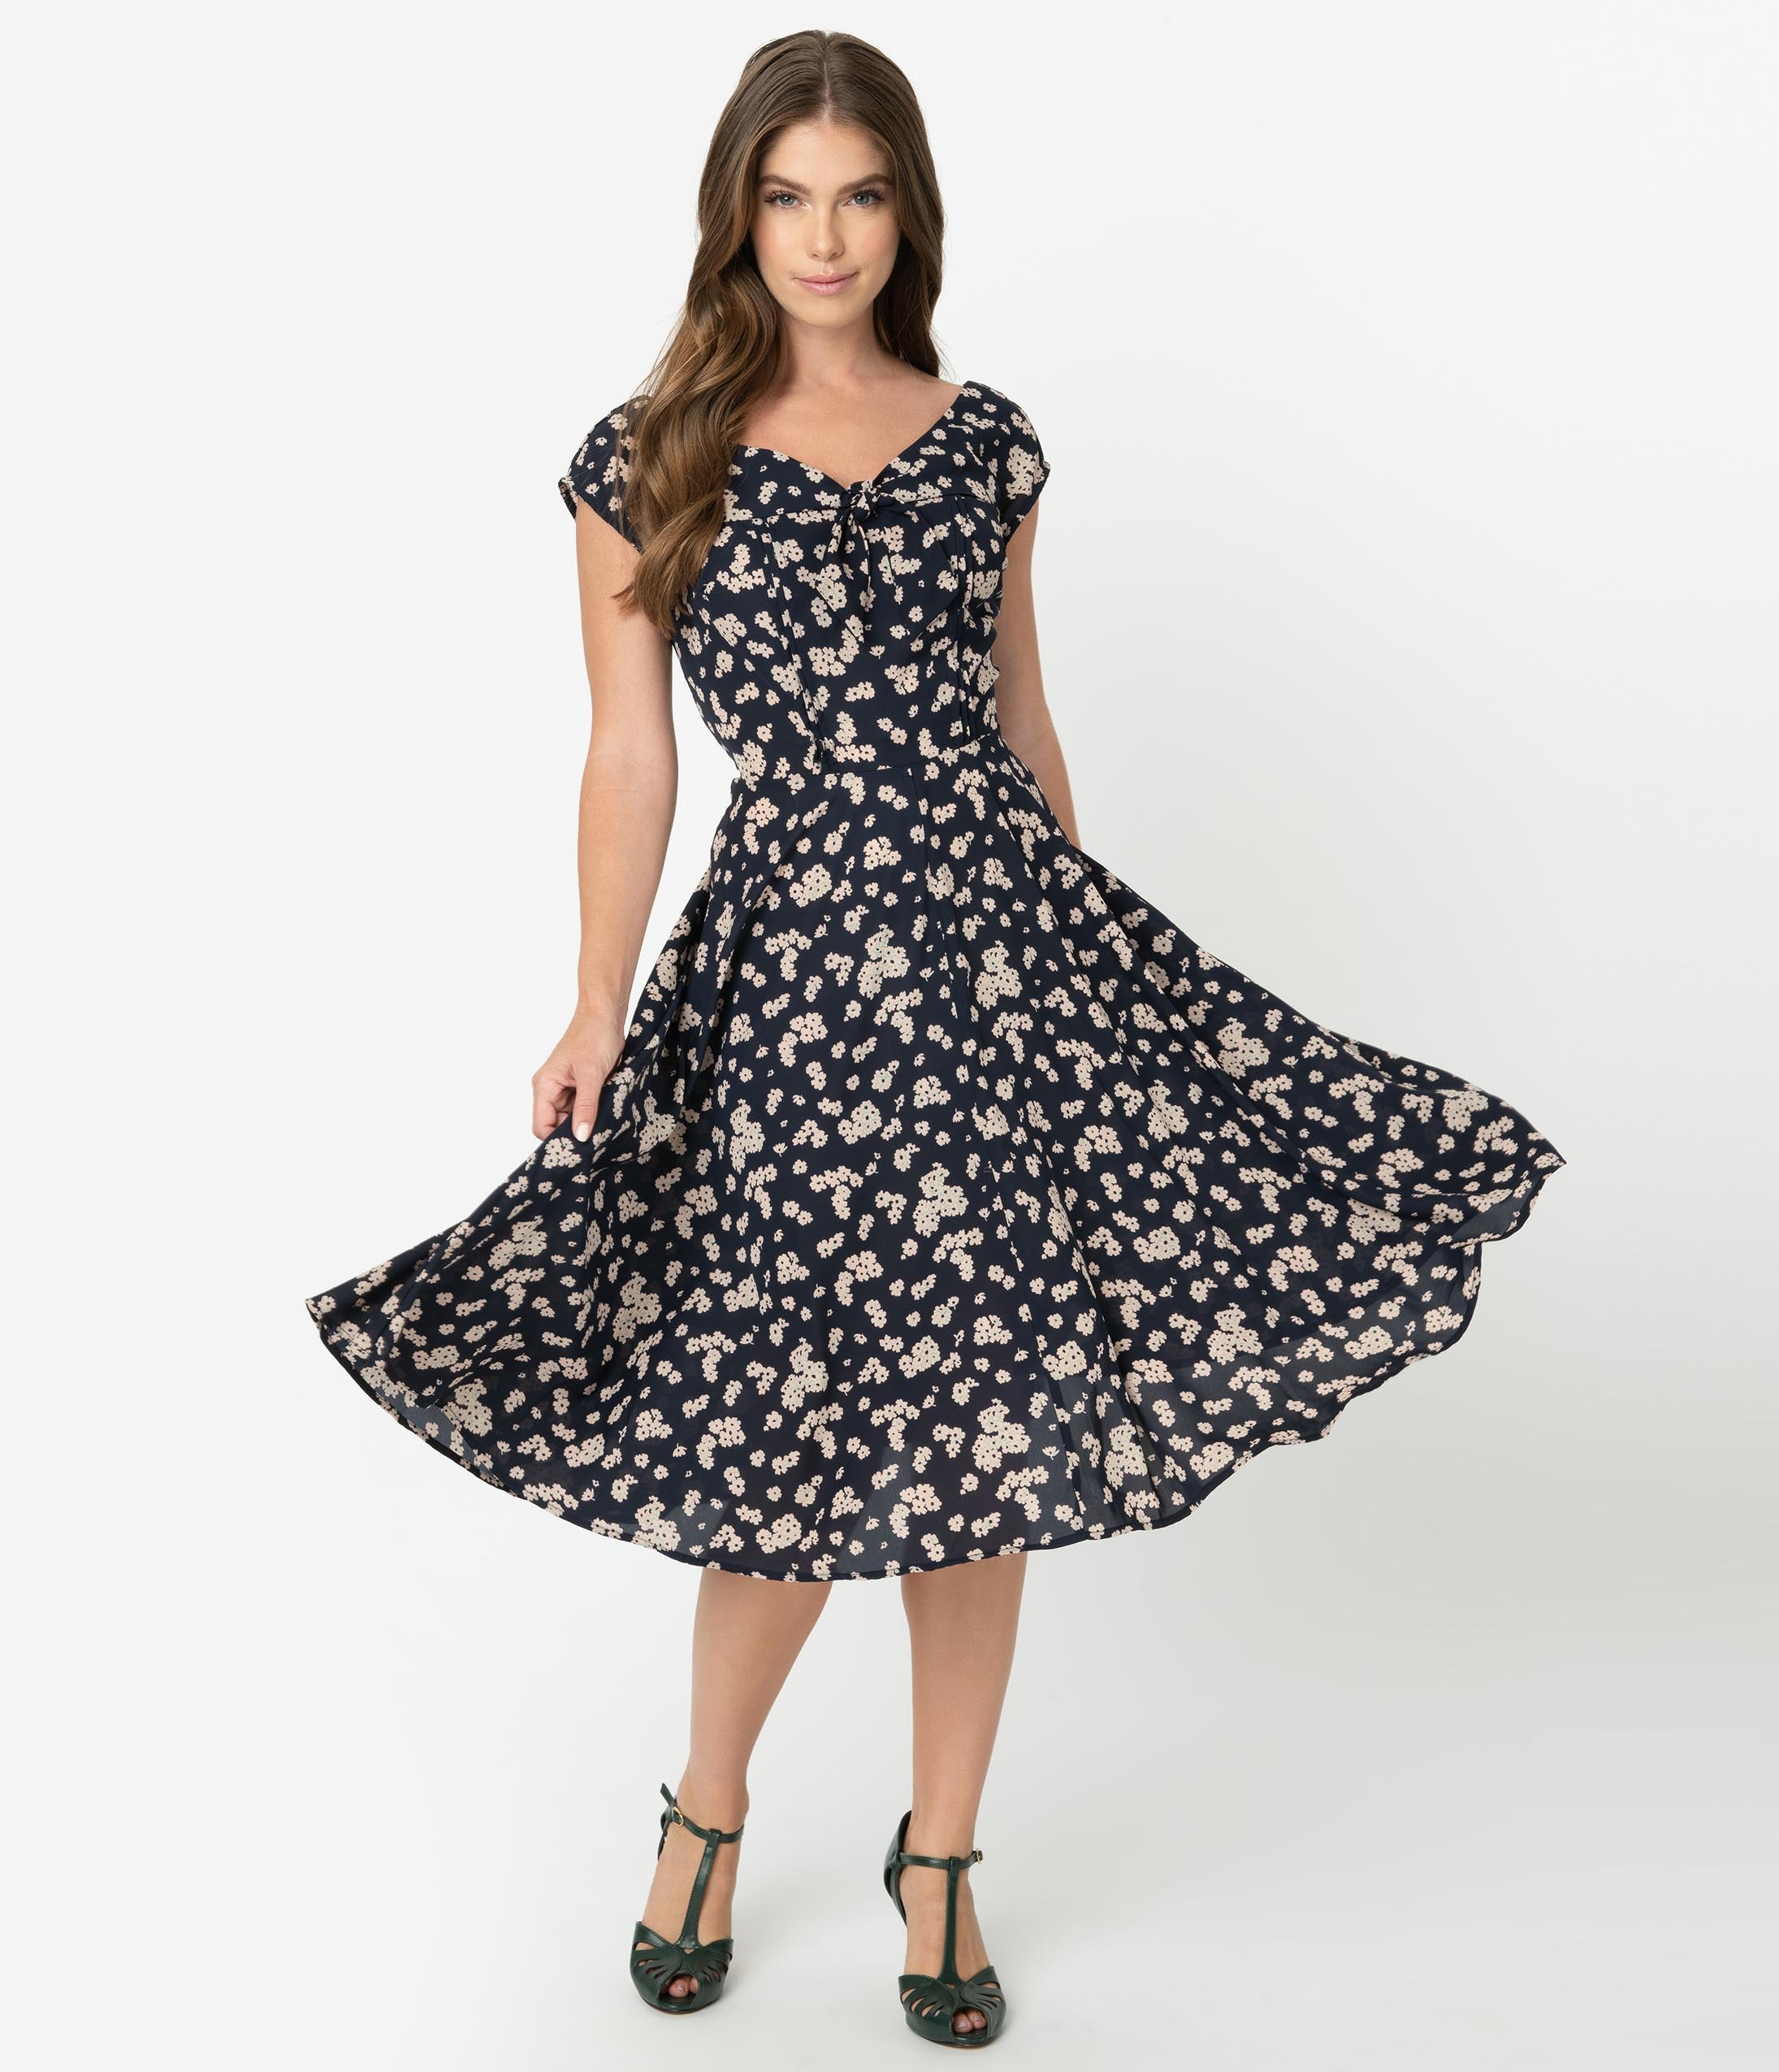 500 Vintage Style Dresses for Sale | Vintage Inspired Dresses Unique Vintage 1940S Style Navy  Pink Floral Print Havilland Dress $78.00 AT vintagedancer.com